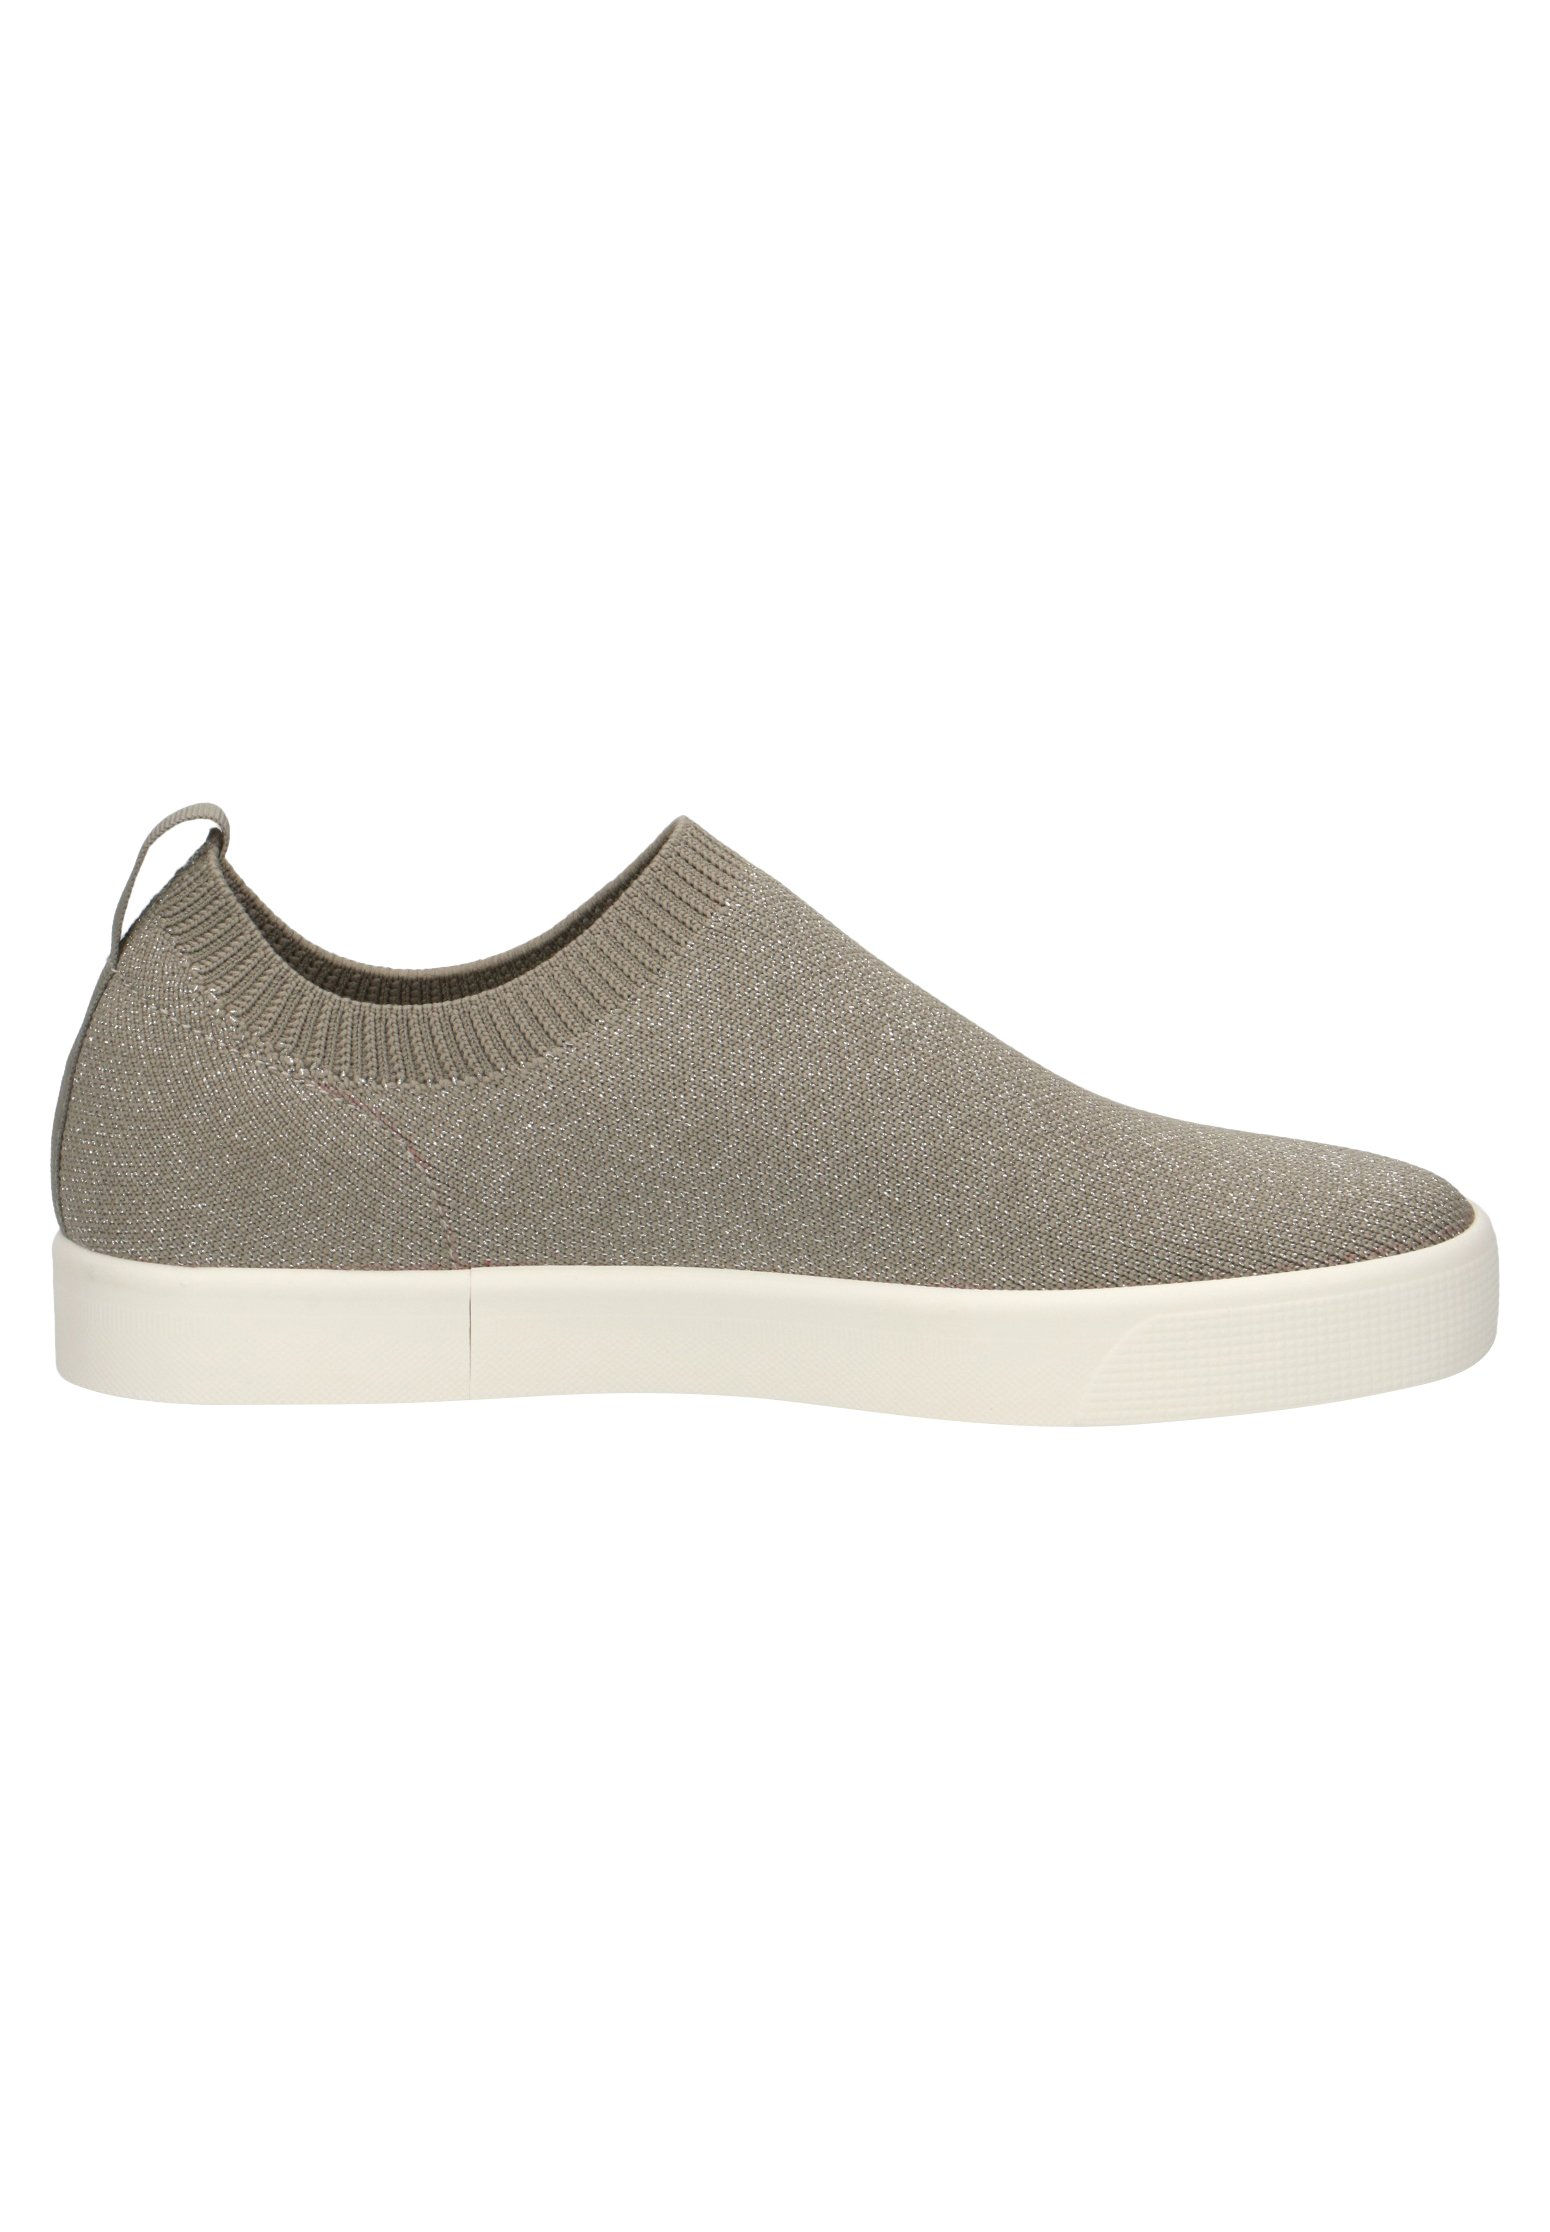 Sneakers lt khaki knit